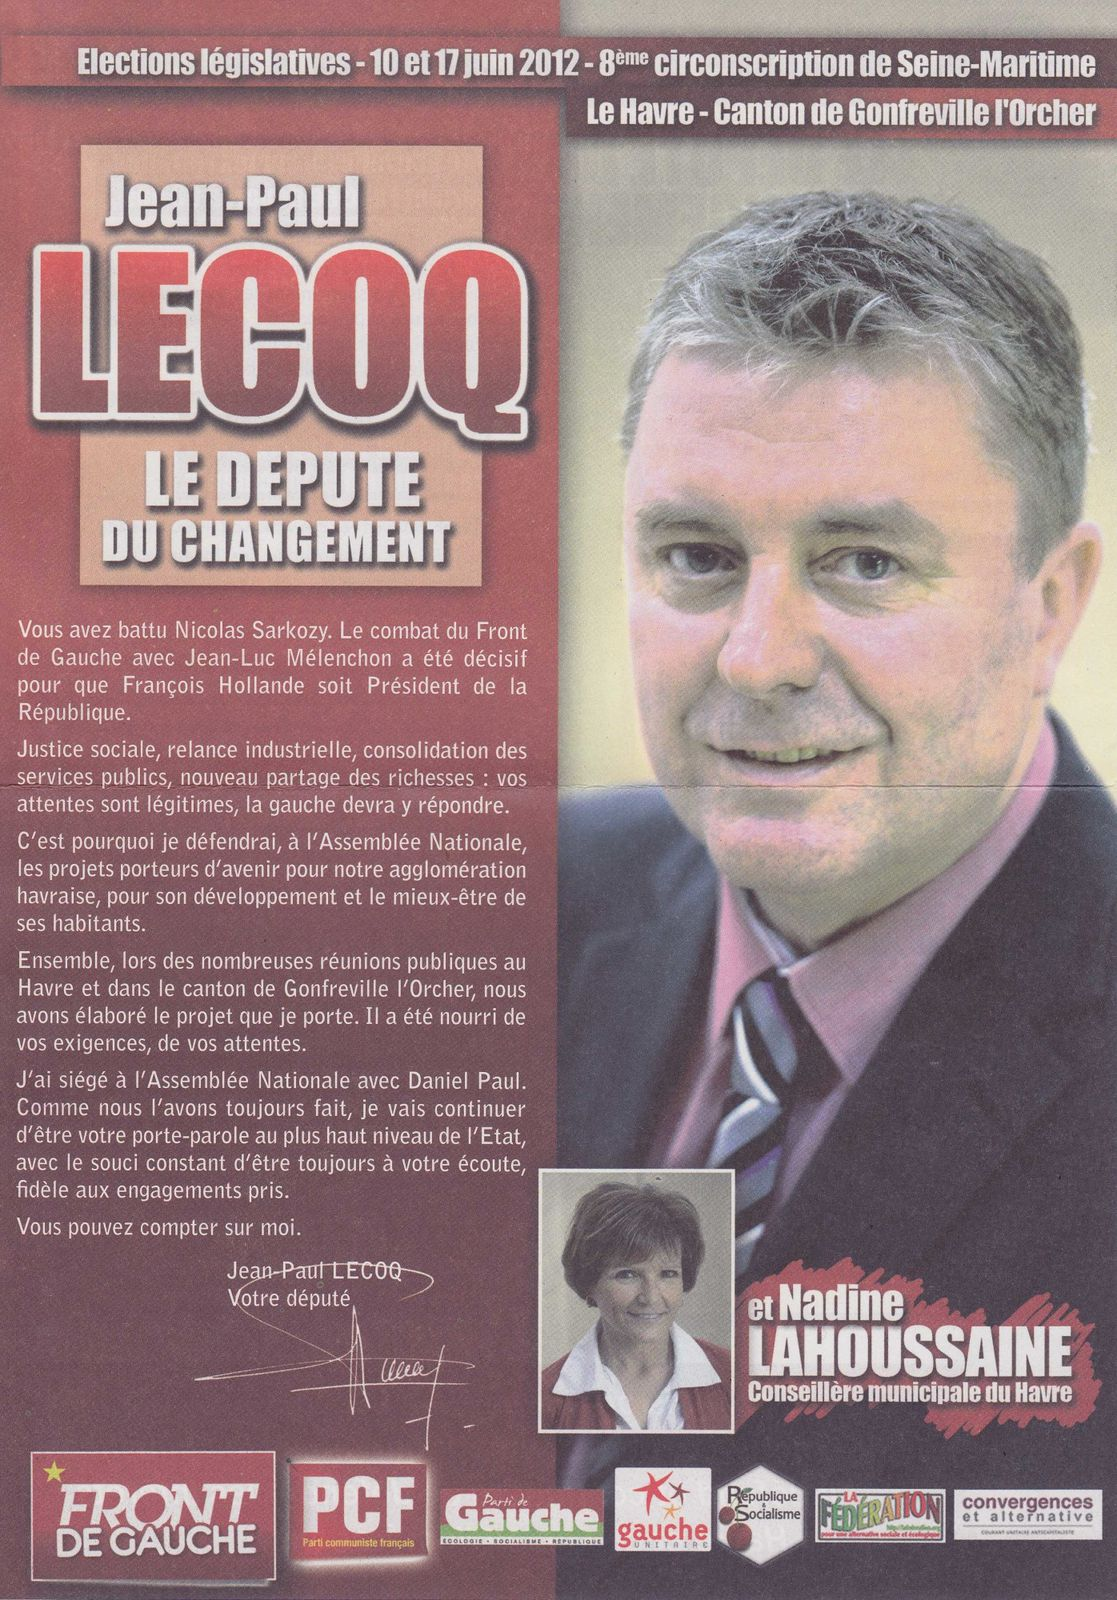 3-2012-Legislative-Jean-Paul-Lecoq-Front-de-Gauche.jpg